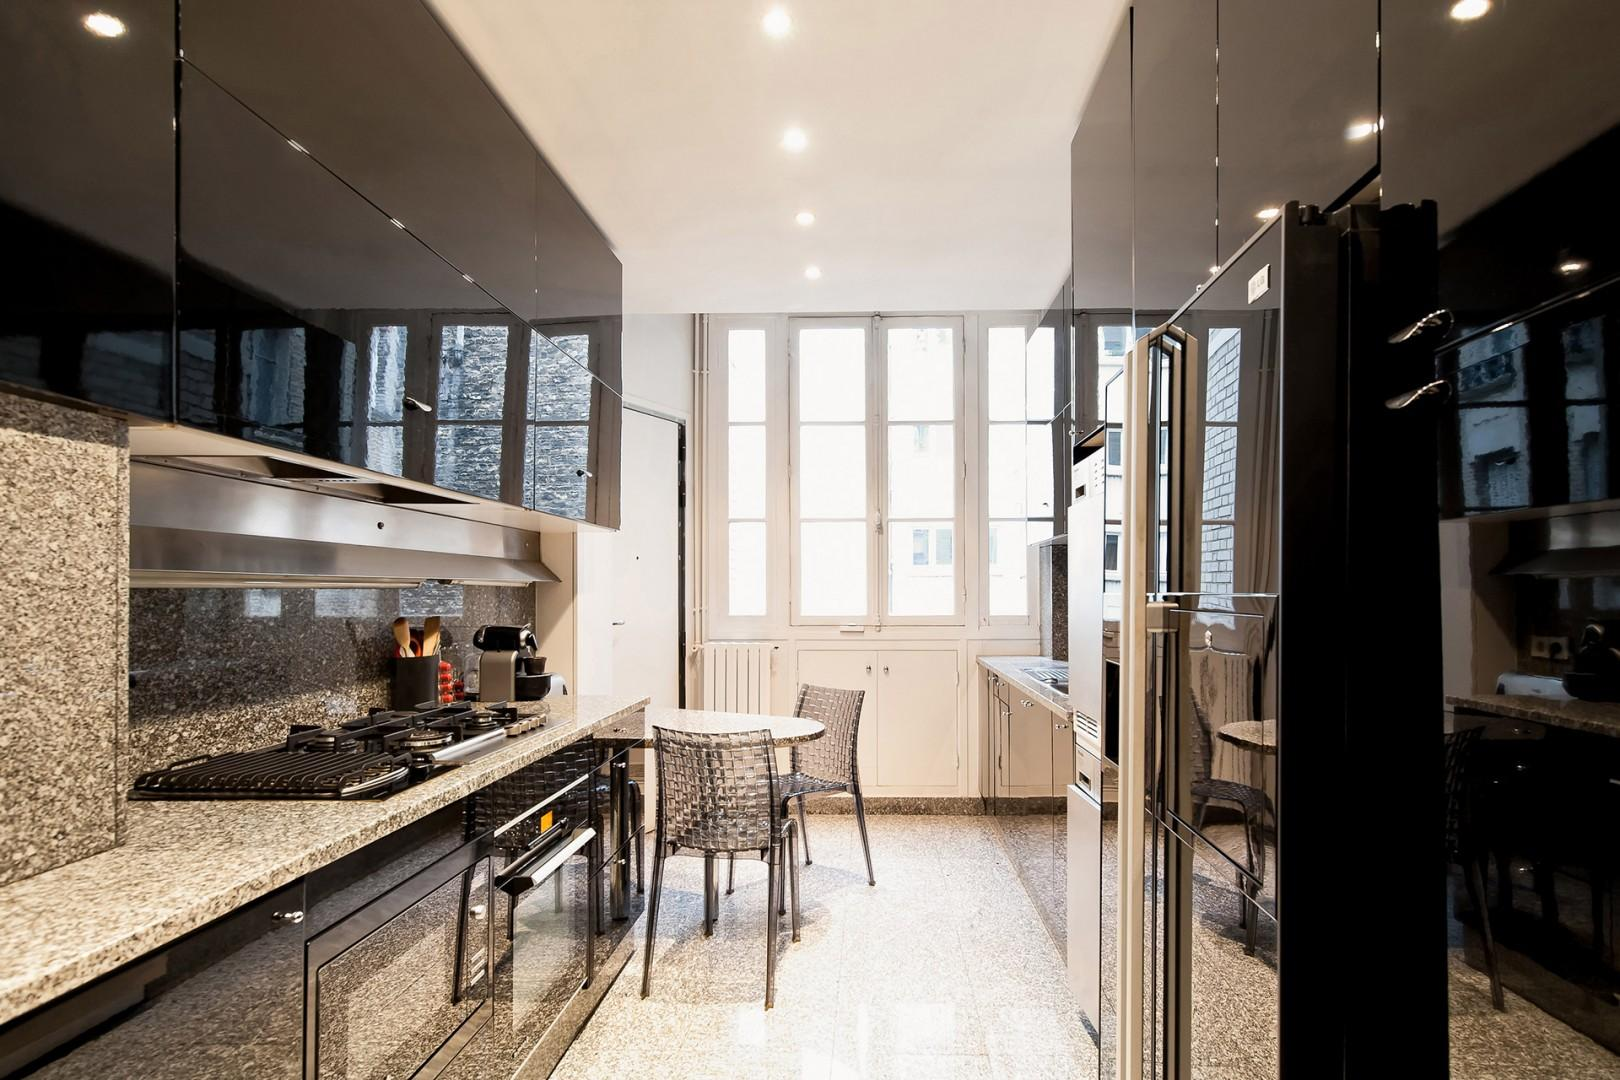 The stunning kitchen is a gourmand's dream with top-of-the-line appliances and a breakfast nook.